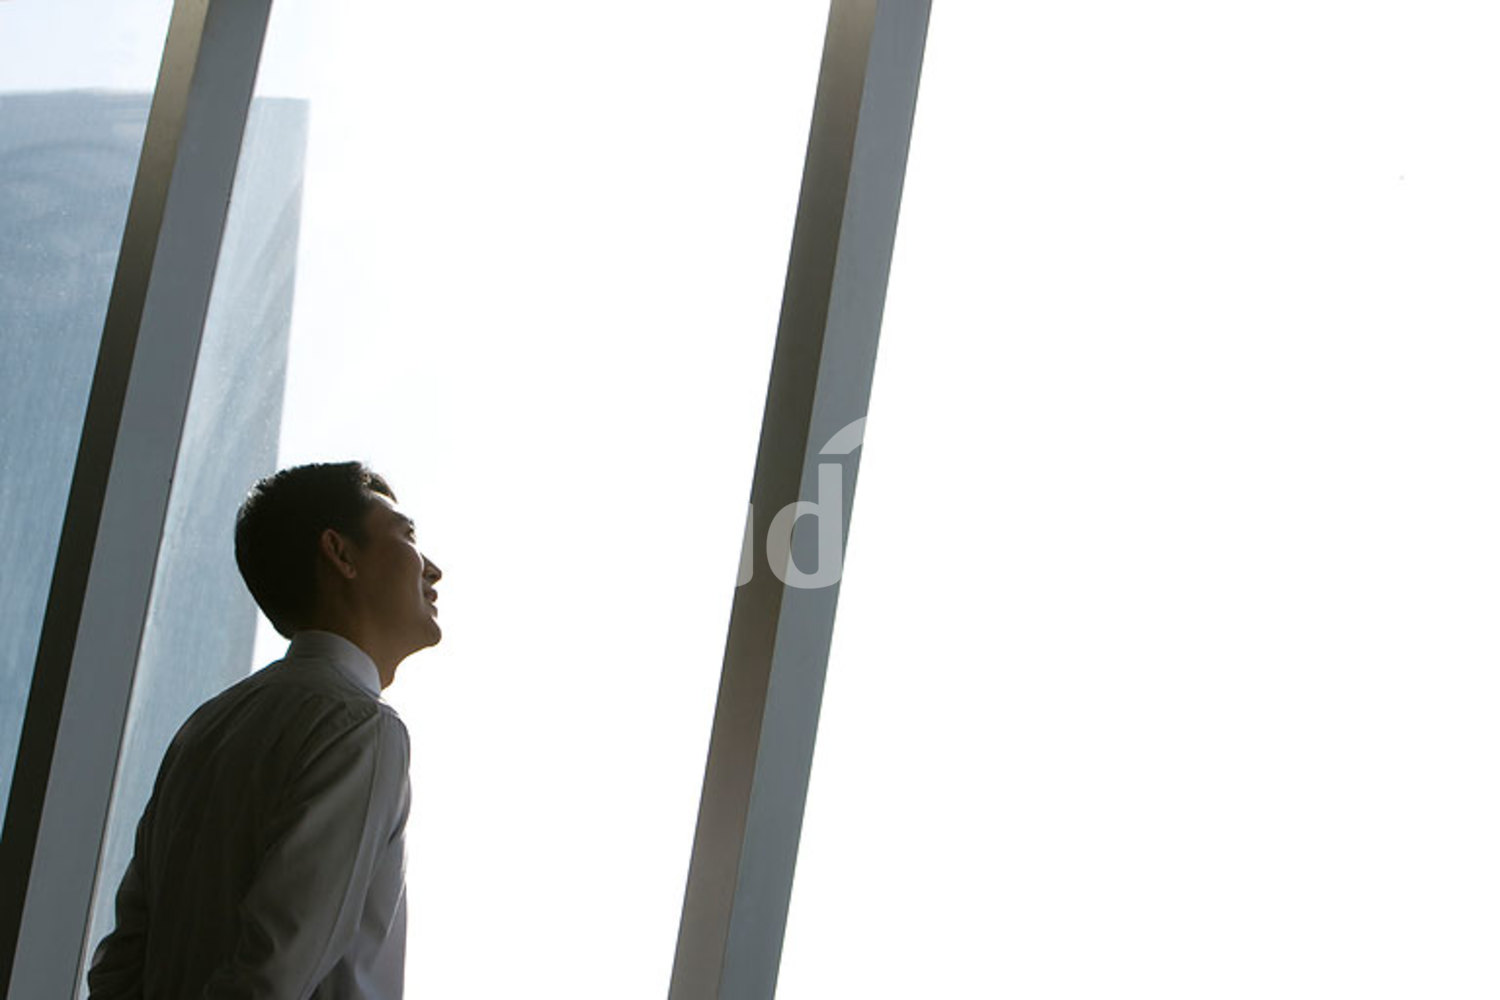 Chinese businessman looking at window